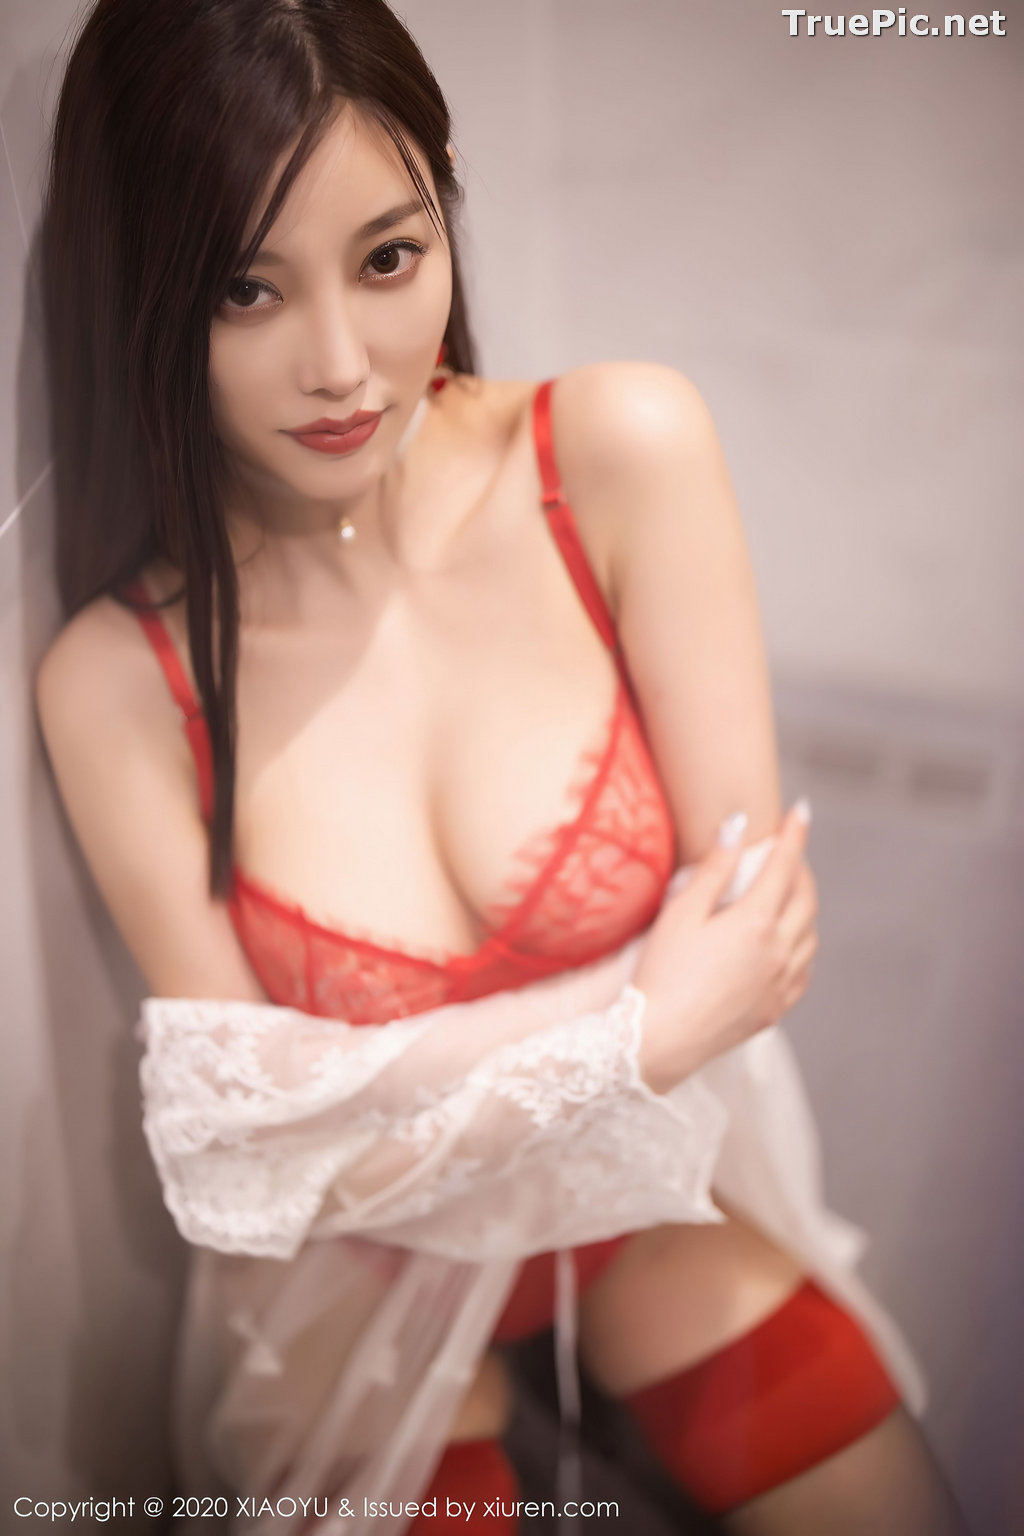 Image XiaoYu Vol.413 - Chinese Model - Yang Chen Chen (杨晨晨sugar)- Red Crystal-clear Lingerie - TruePic.net - Picture-16